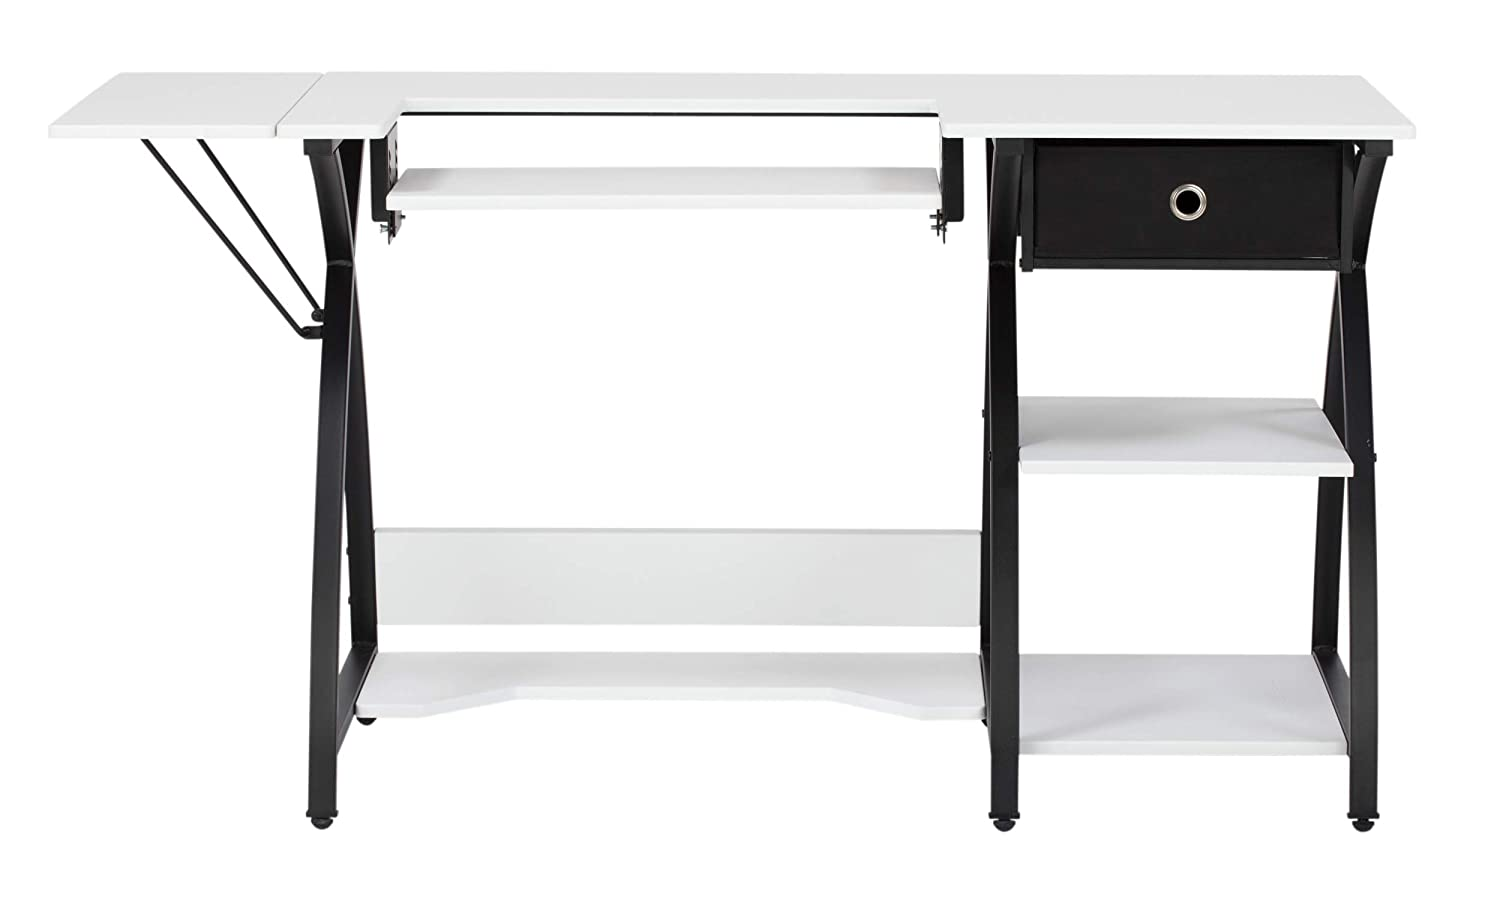 Sew Ready Comet Sewing Desk Multipurpose/Sewing Table Craft Table Sturdy Computer Desk with Drawer, 13333, Black/White